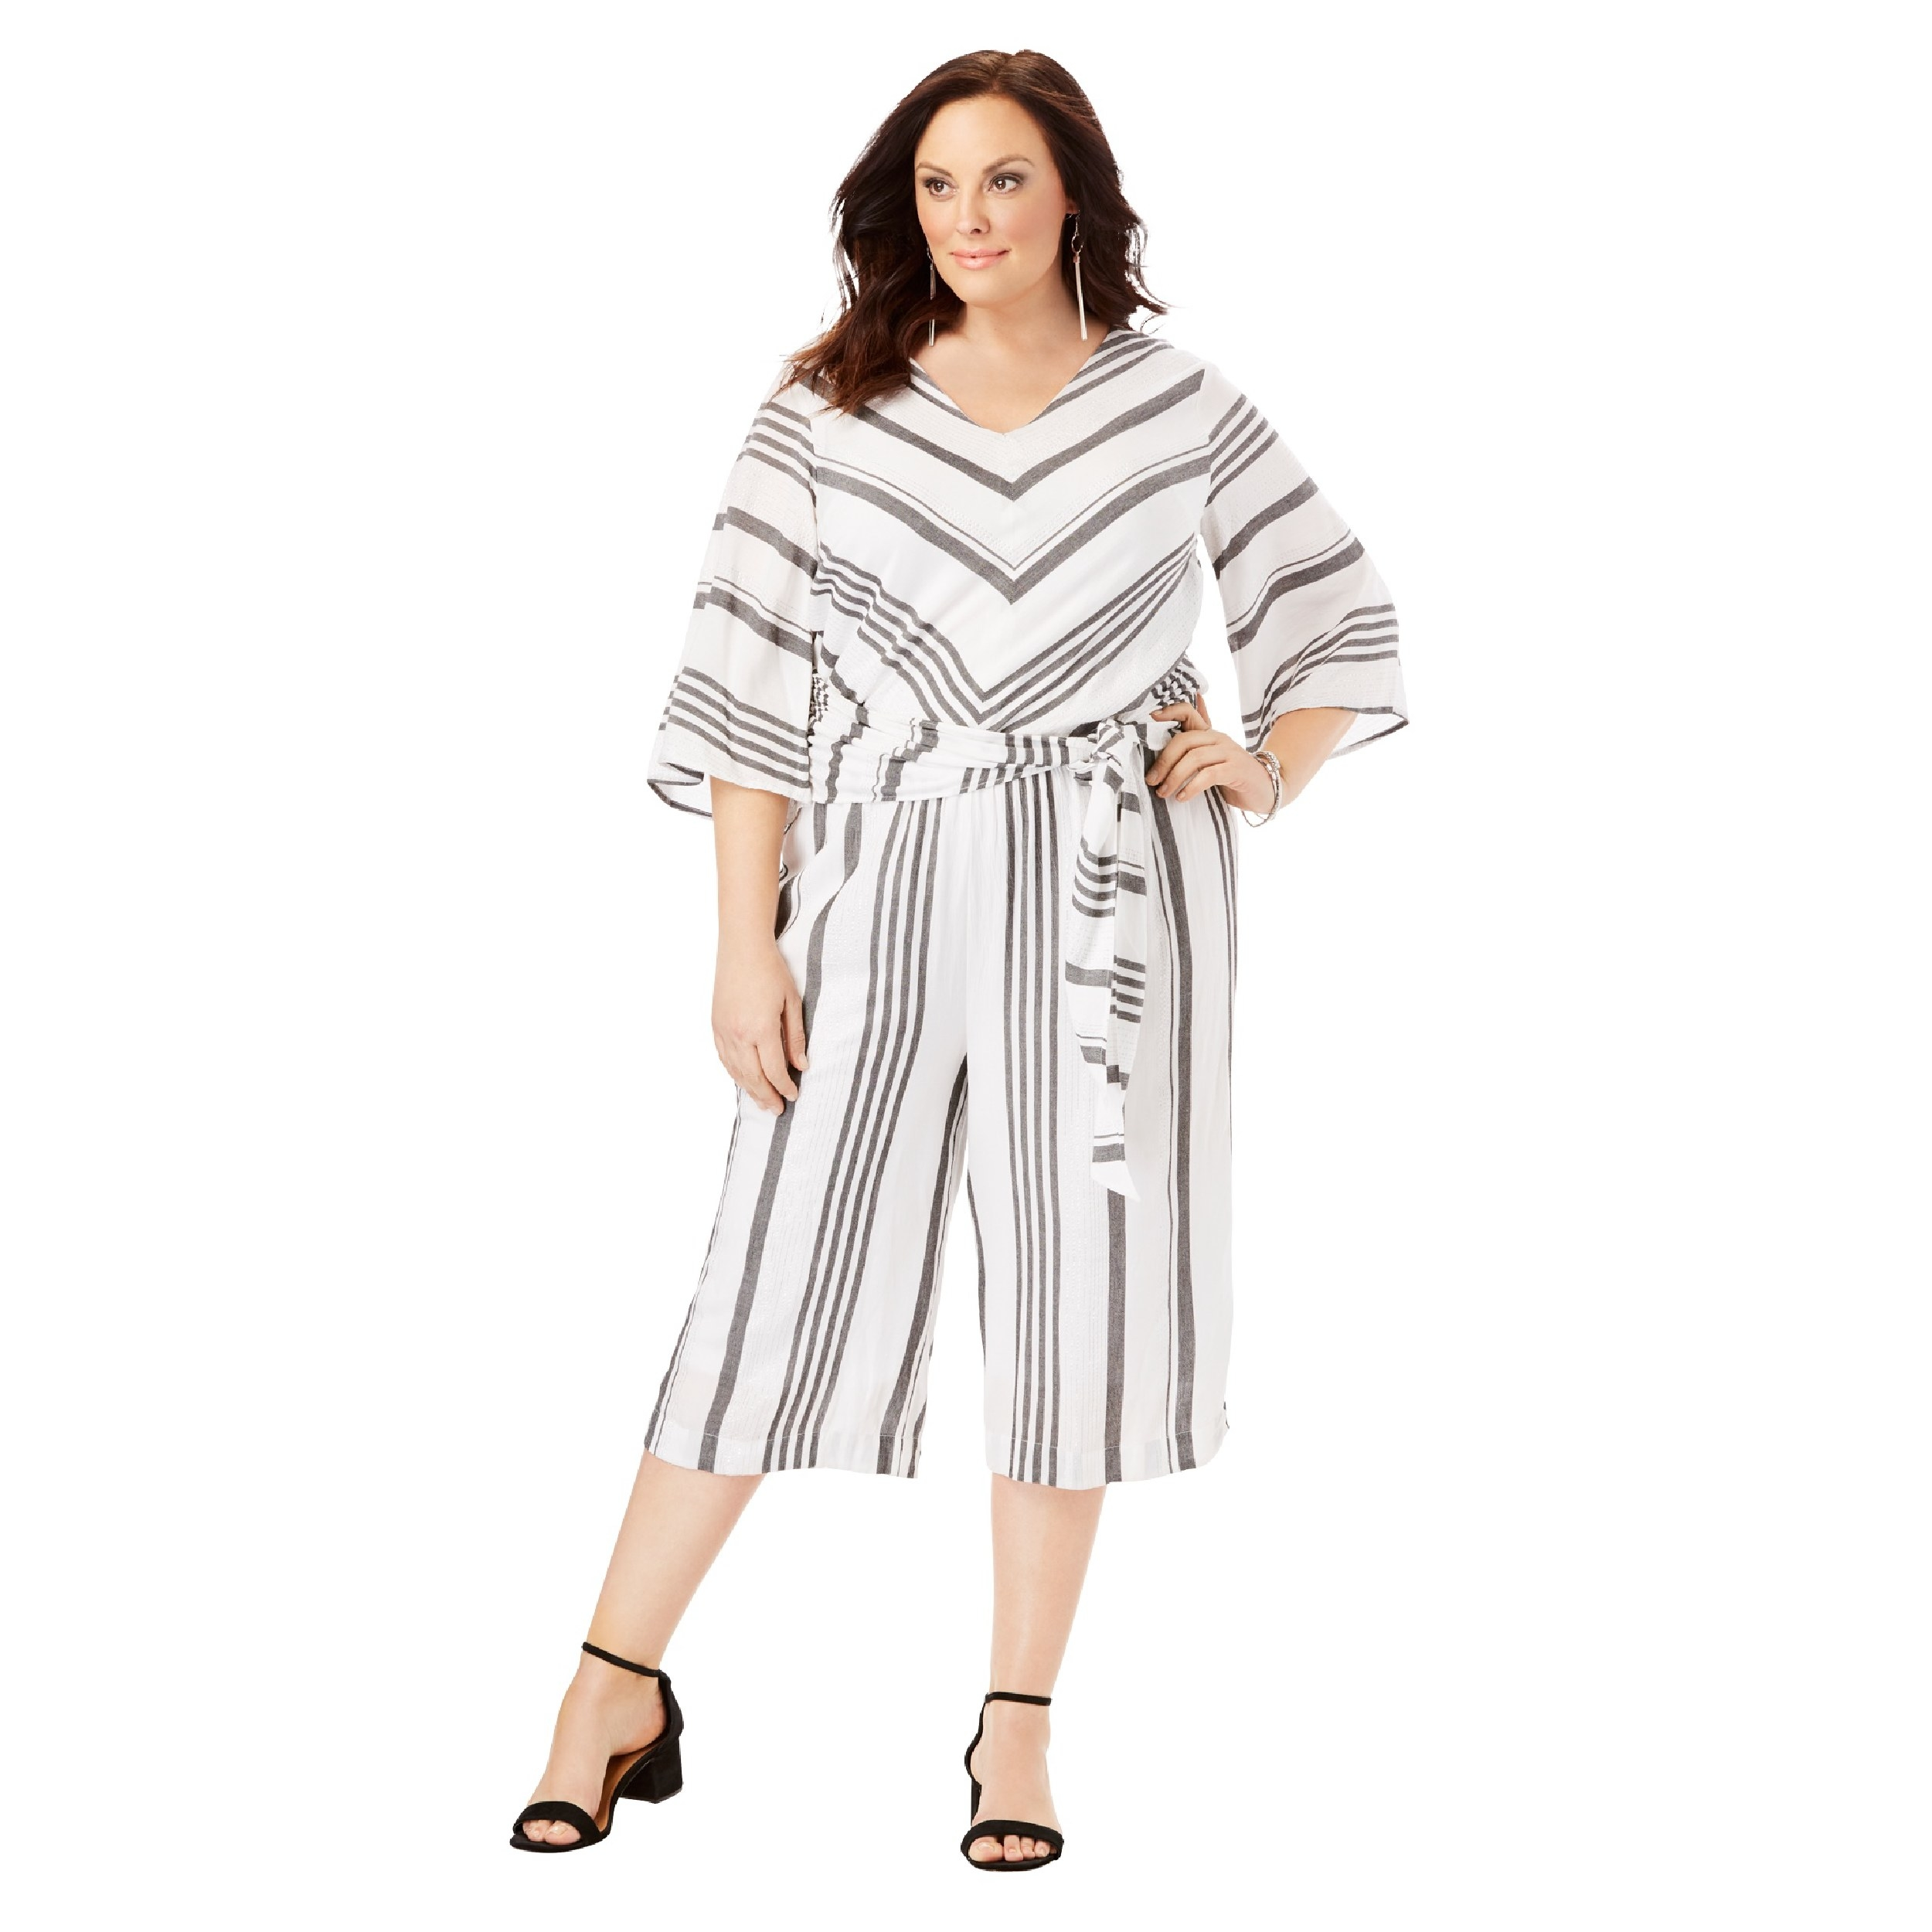 The grey and white striped jumpsuit with wide sleeves